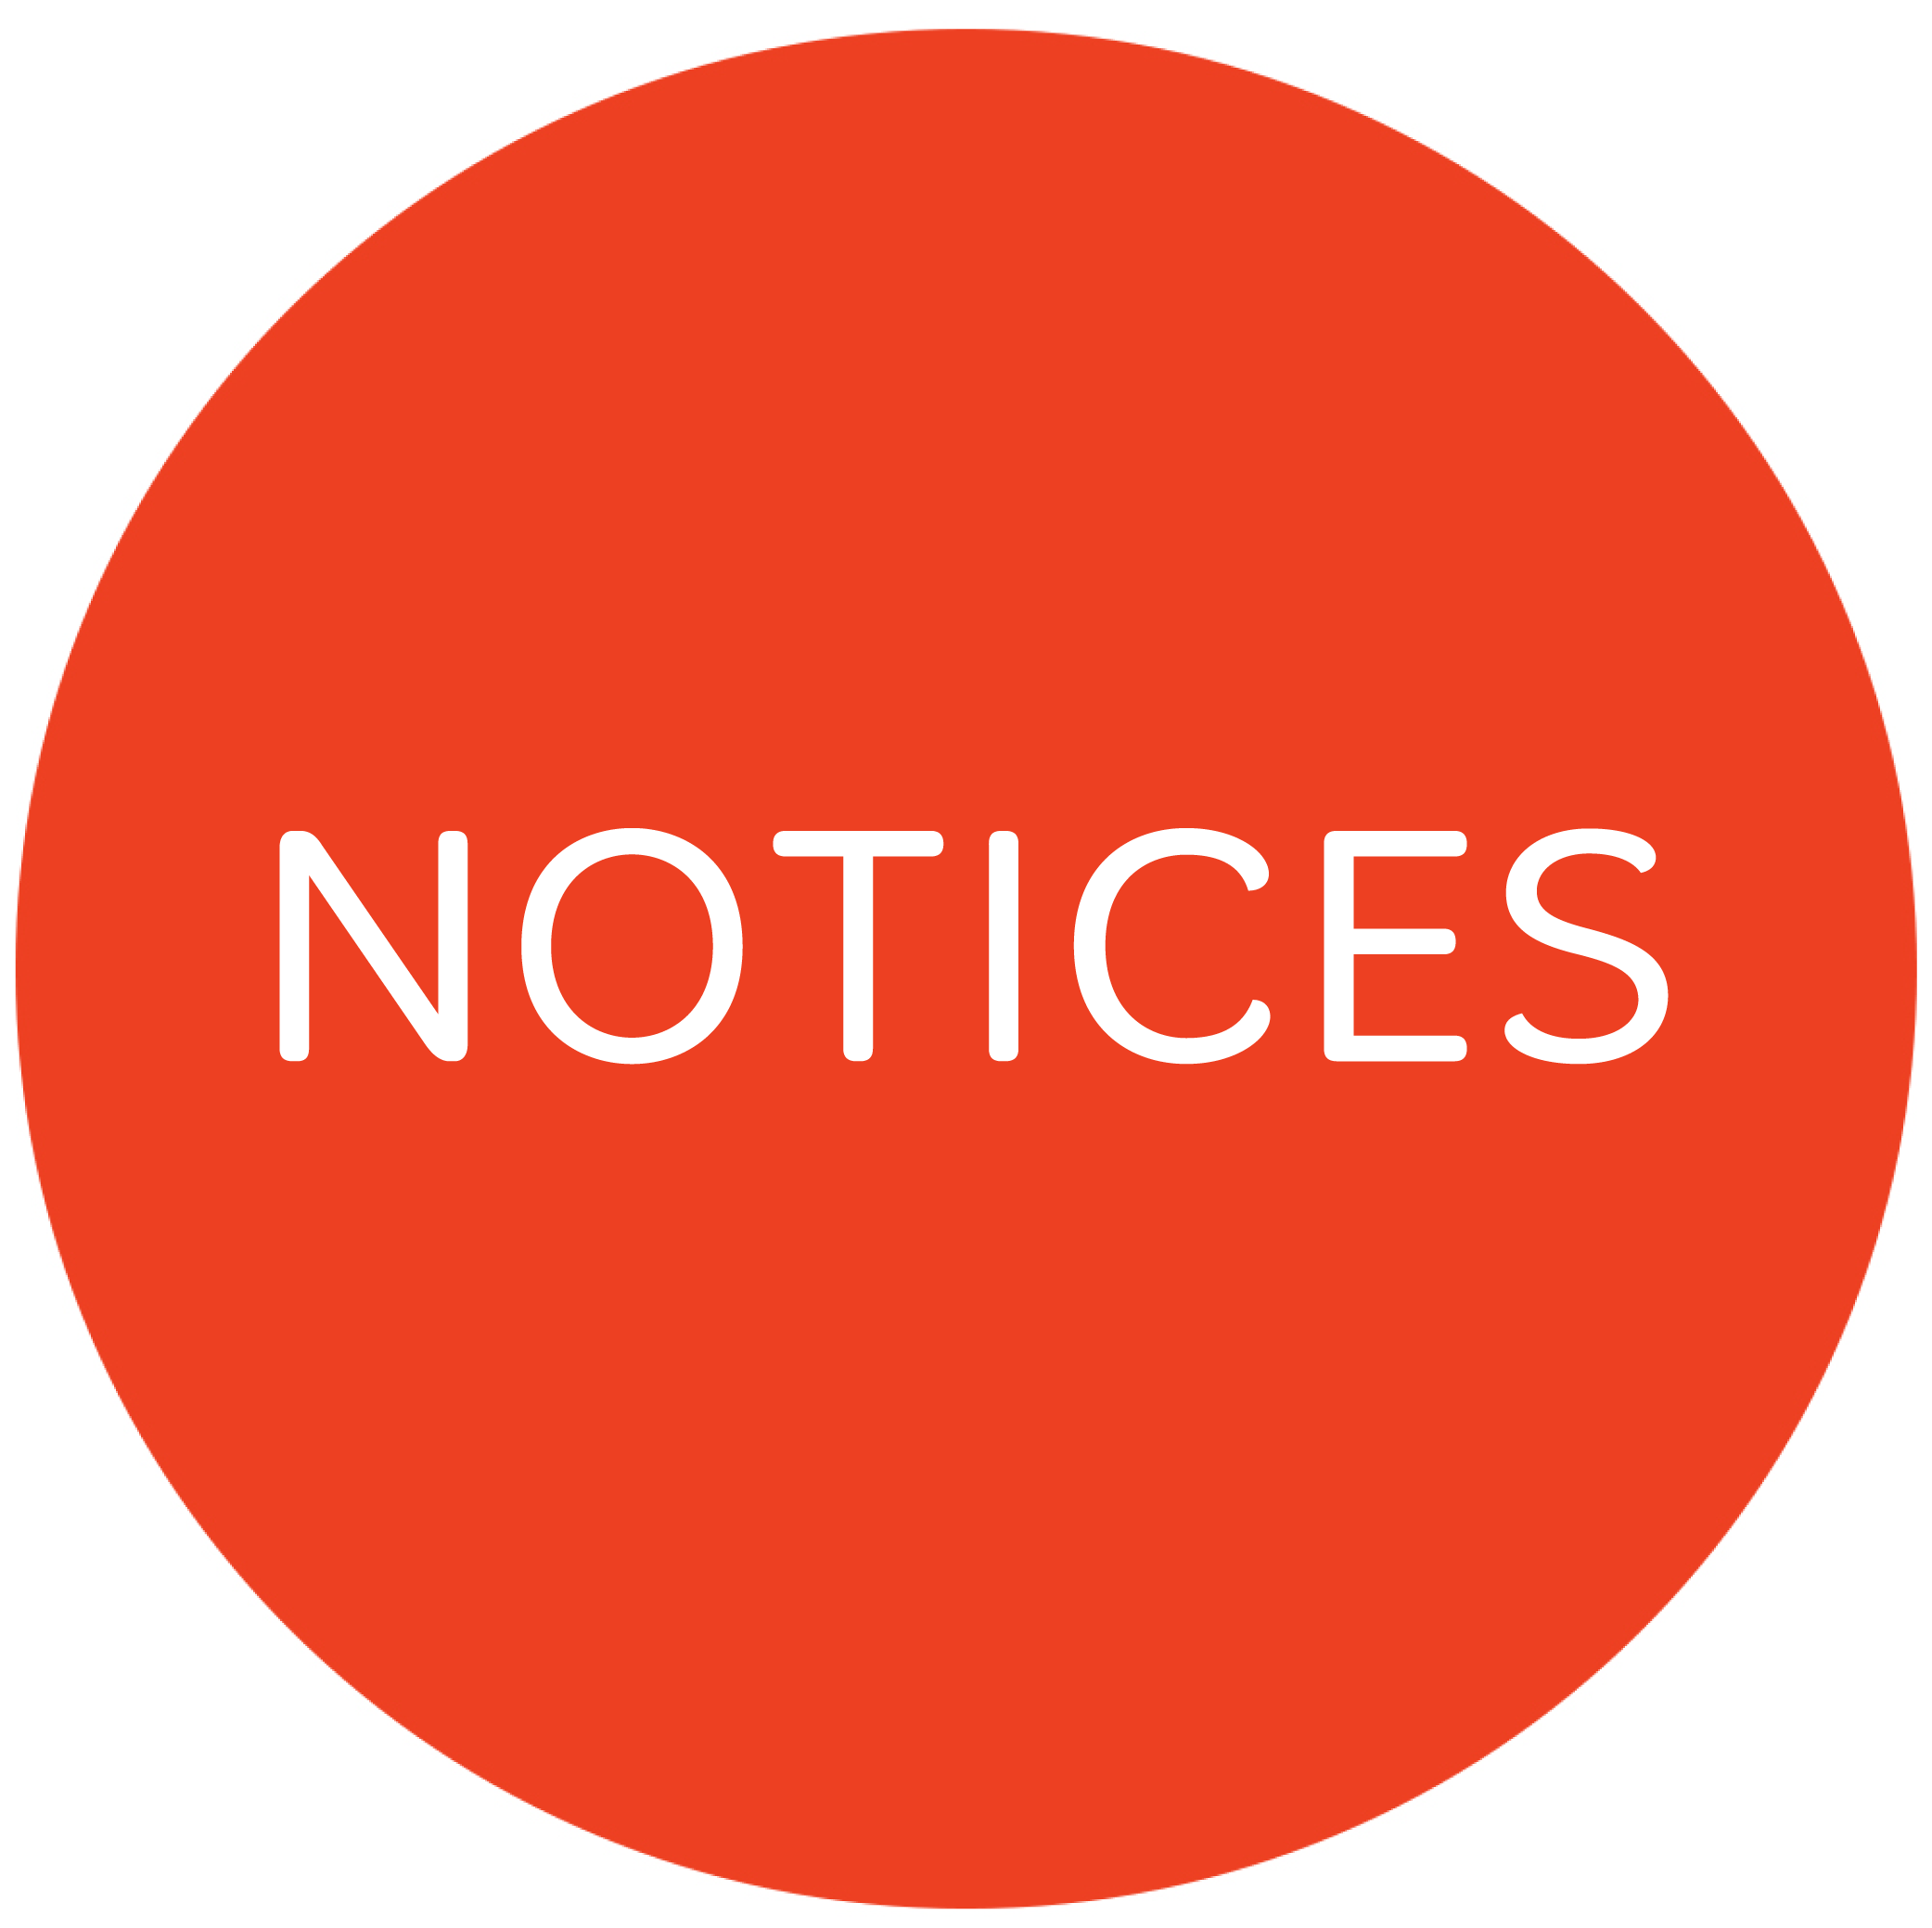 Notices- 18 March 2018